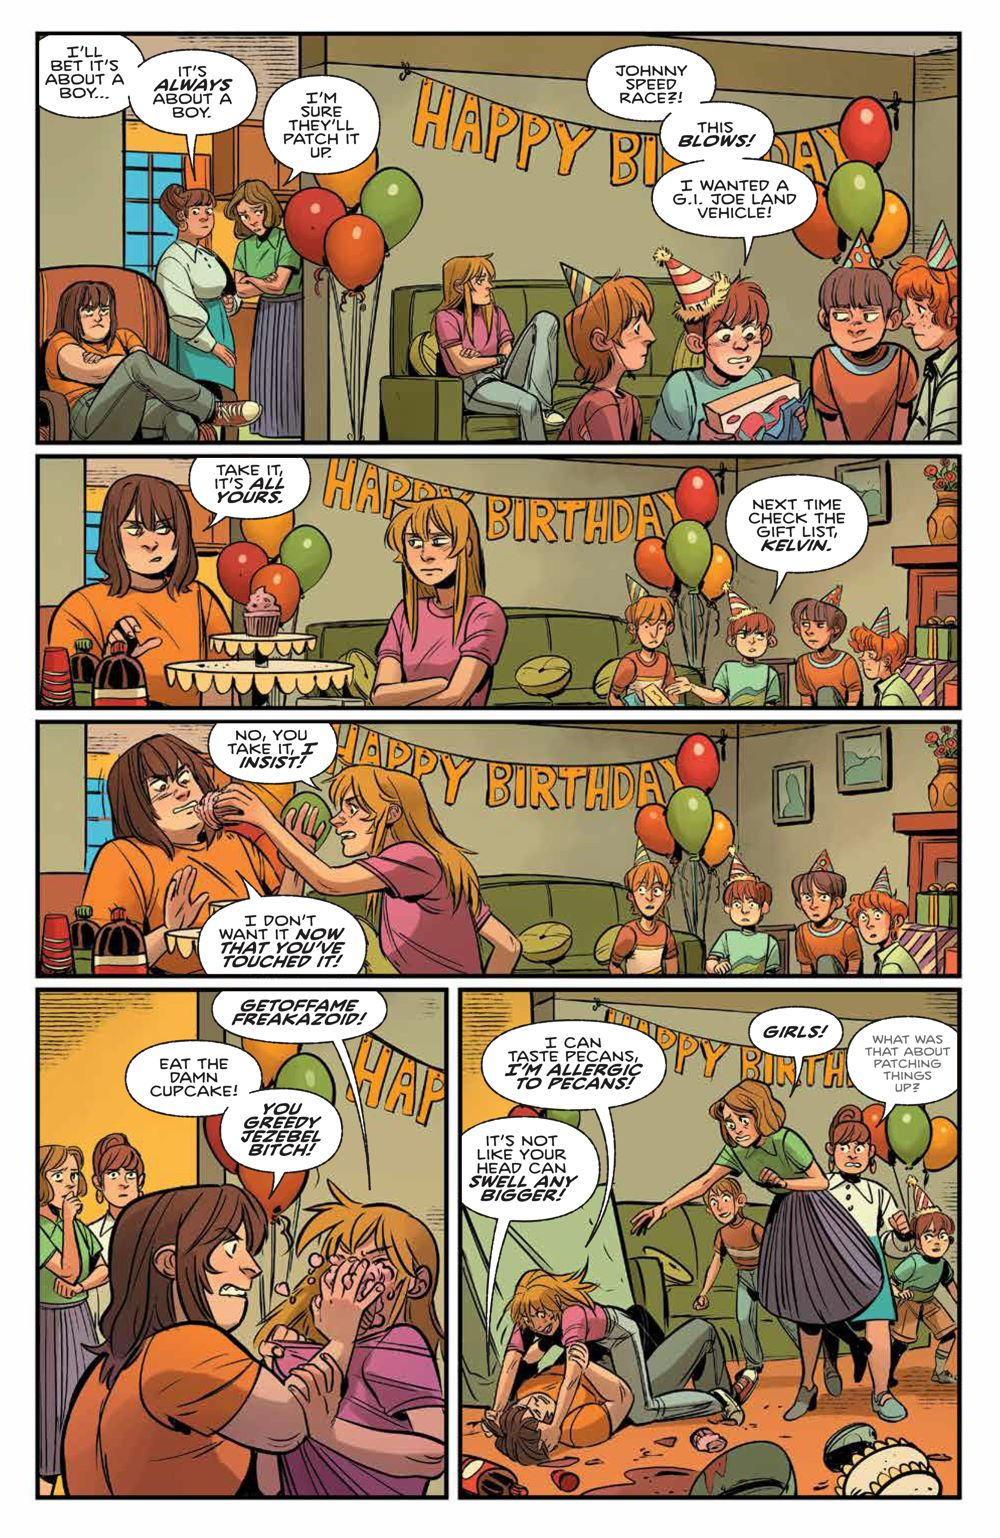 ProctorValleyRoad_005_PRESS_3 ComicList Previews: PROCTOR VALLEY ROAD #5 (OF 5)